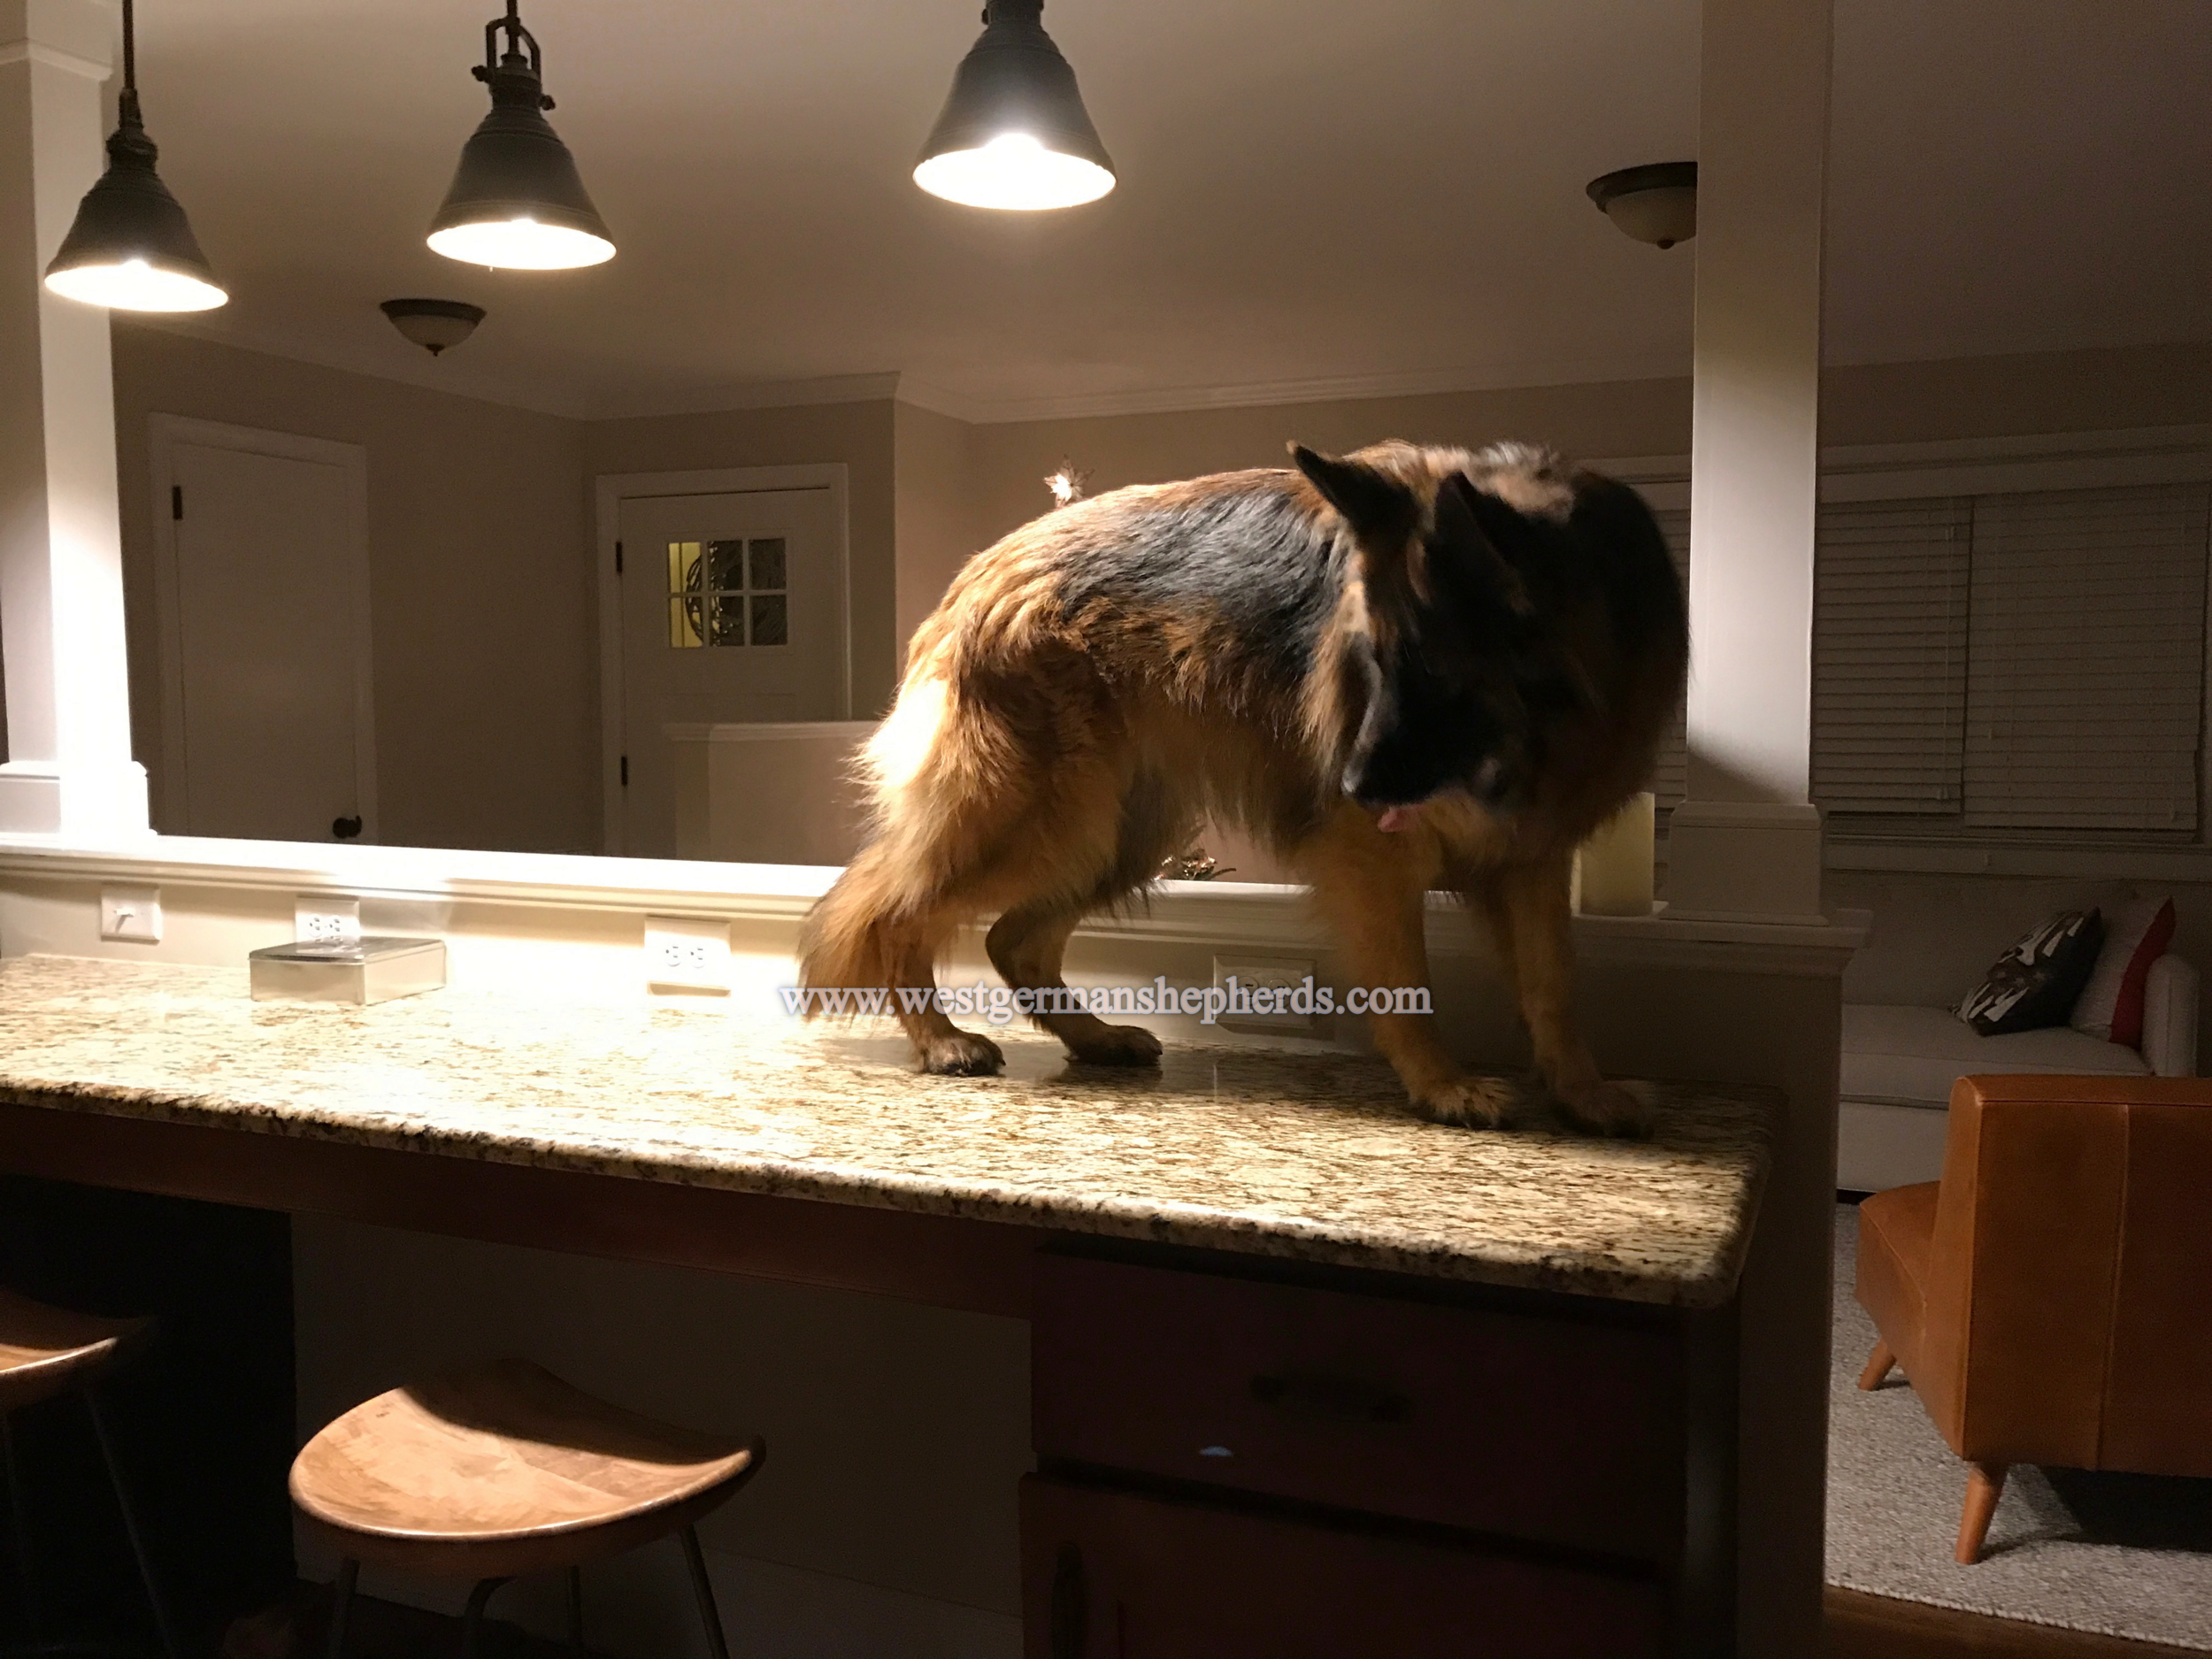 BUSTED: riley caught while countertop surfing